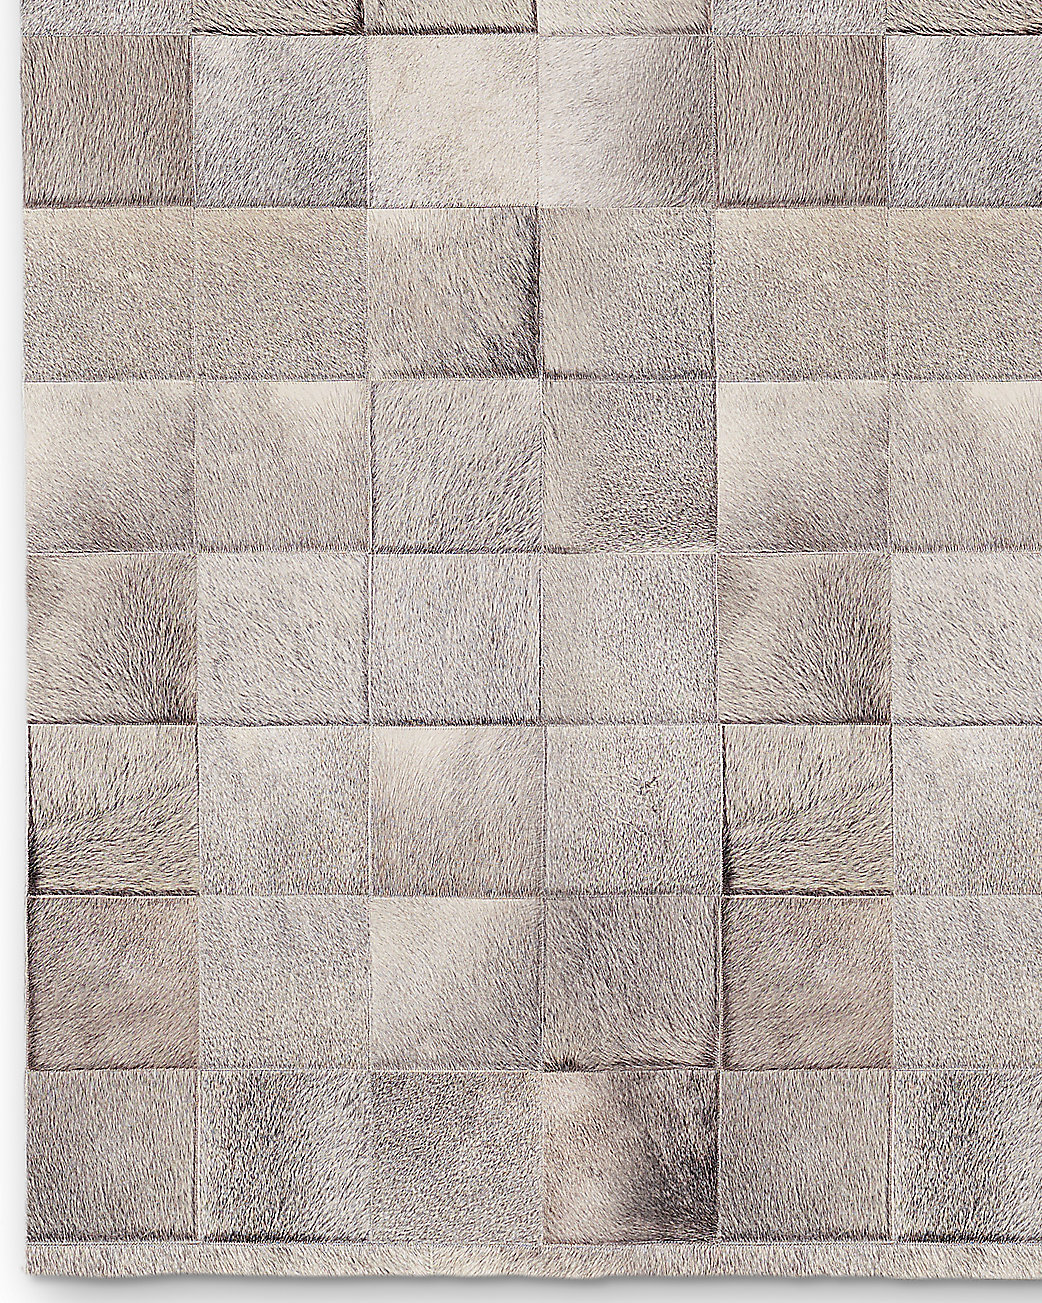 South American Cowhide Tile Rug - Grey